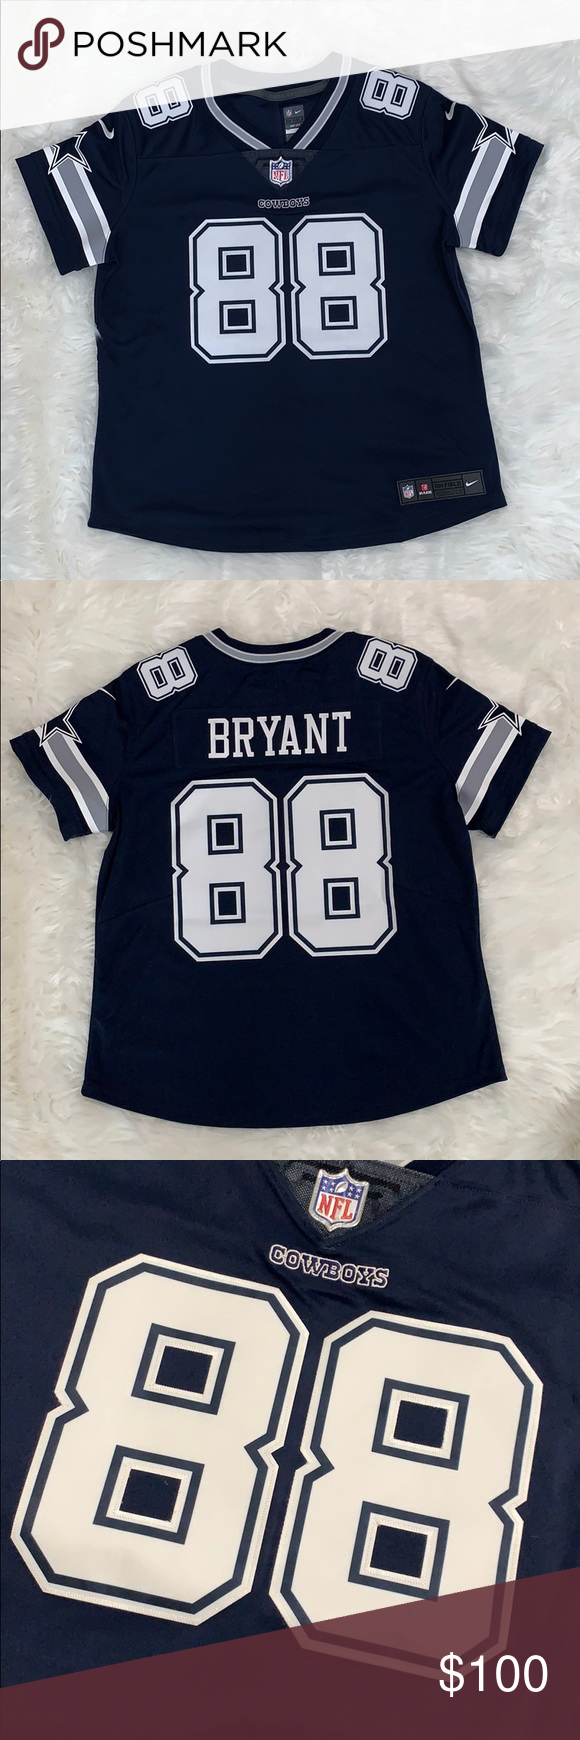 Women Dez Bryant Vapor Untouchable Limited Jersey Stitched numbers  Worn once  Excellent condition Tops #dezbryantjersey Women Dez Bryant Vapor Untouchable Limited Jersey Stitched numbers  Worn once  Excellent condition Tops #dezbryantjersey Women Dez Bryant Vapor Untouchable Limited Jersey Stitched numbers  Worn once  Excellent condition Tops #dezbryantjersey Women Dez Bryant Vapor Untouchable Limited Jersey Stitched numbers  Worn once  Excellent condition Tops #dezbryant